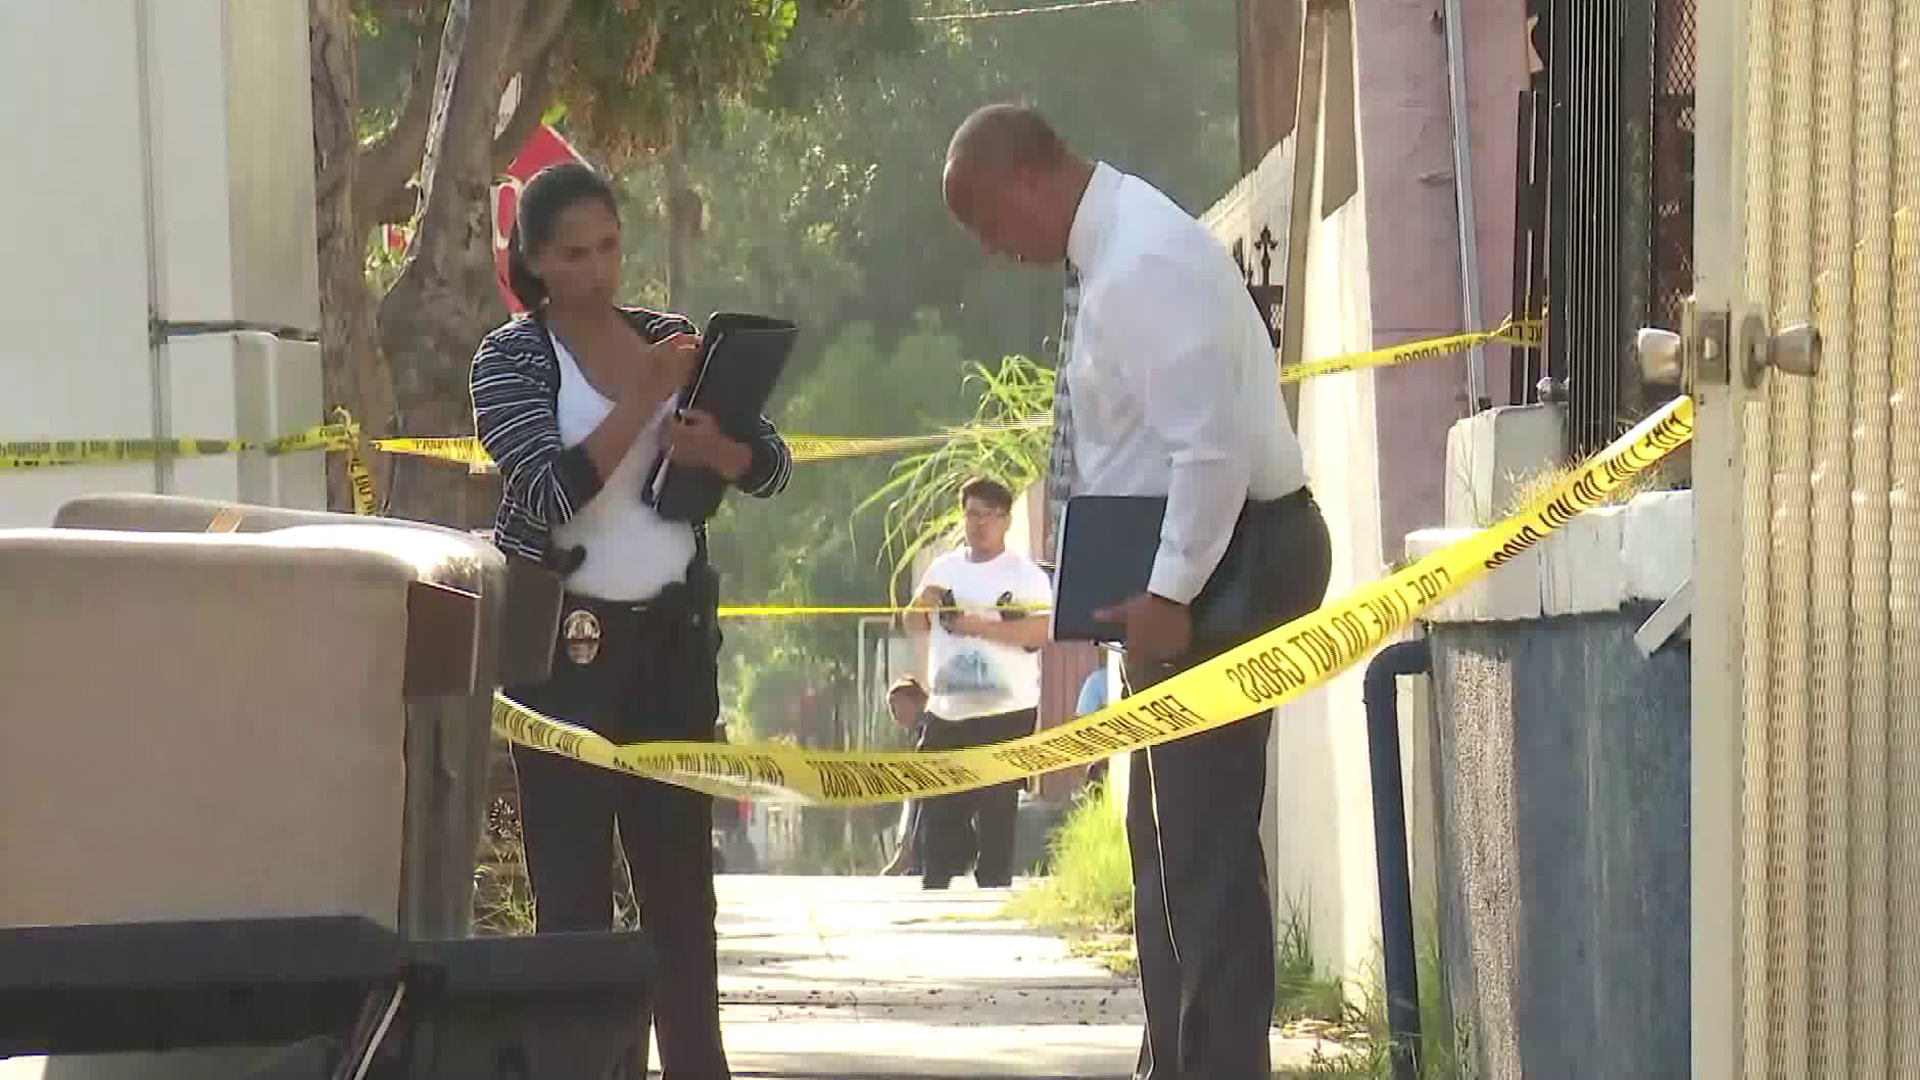 Authorities respond to investigate a fatal stabbing in the Pico-Union neighborhood of Los Angeles on June 13, 2019. (Credit: KTLA)